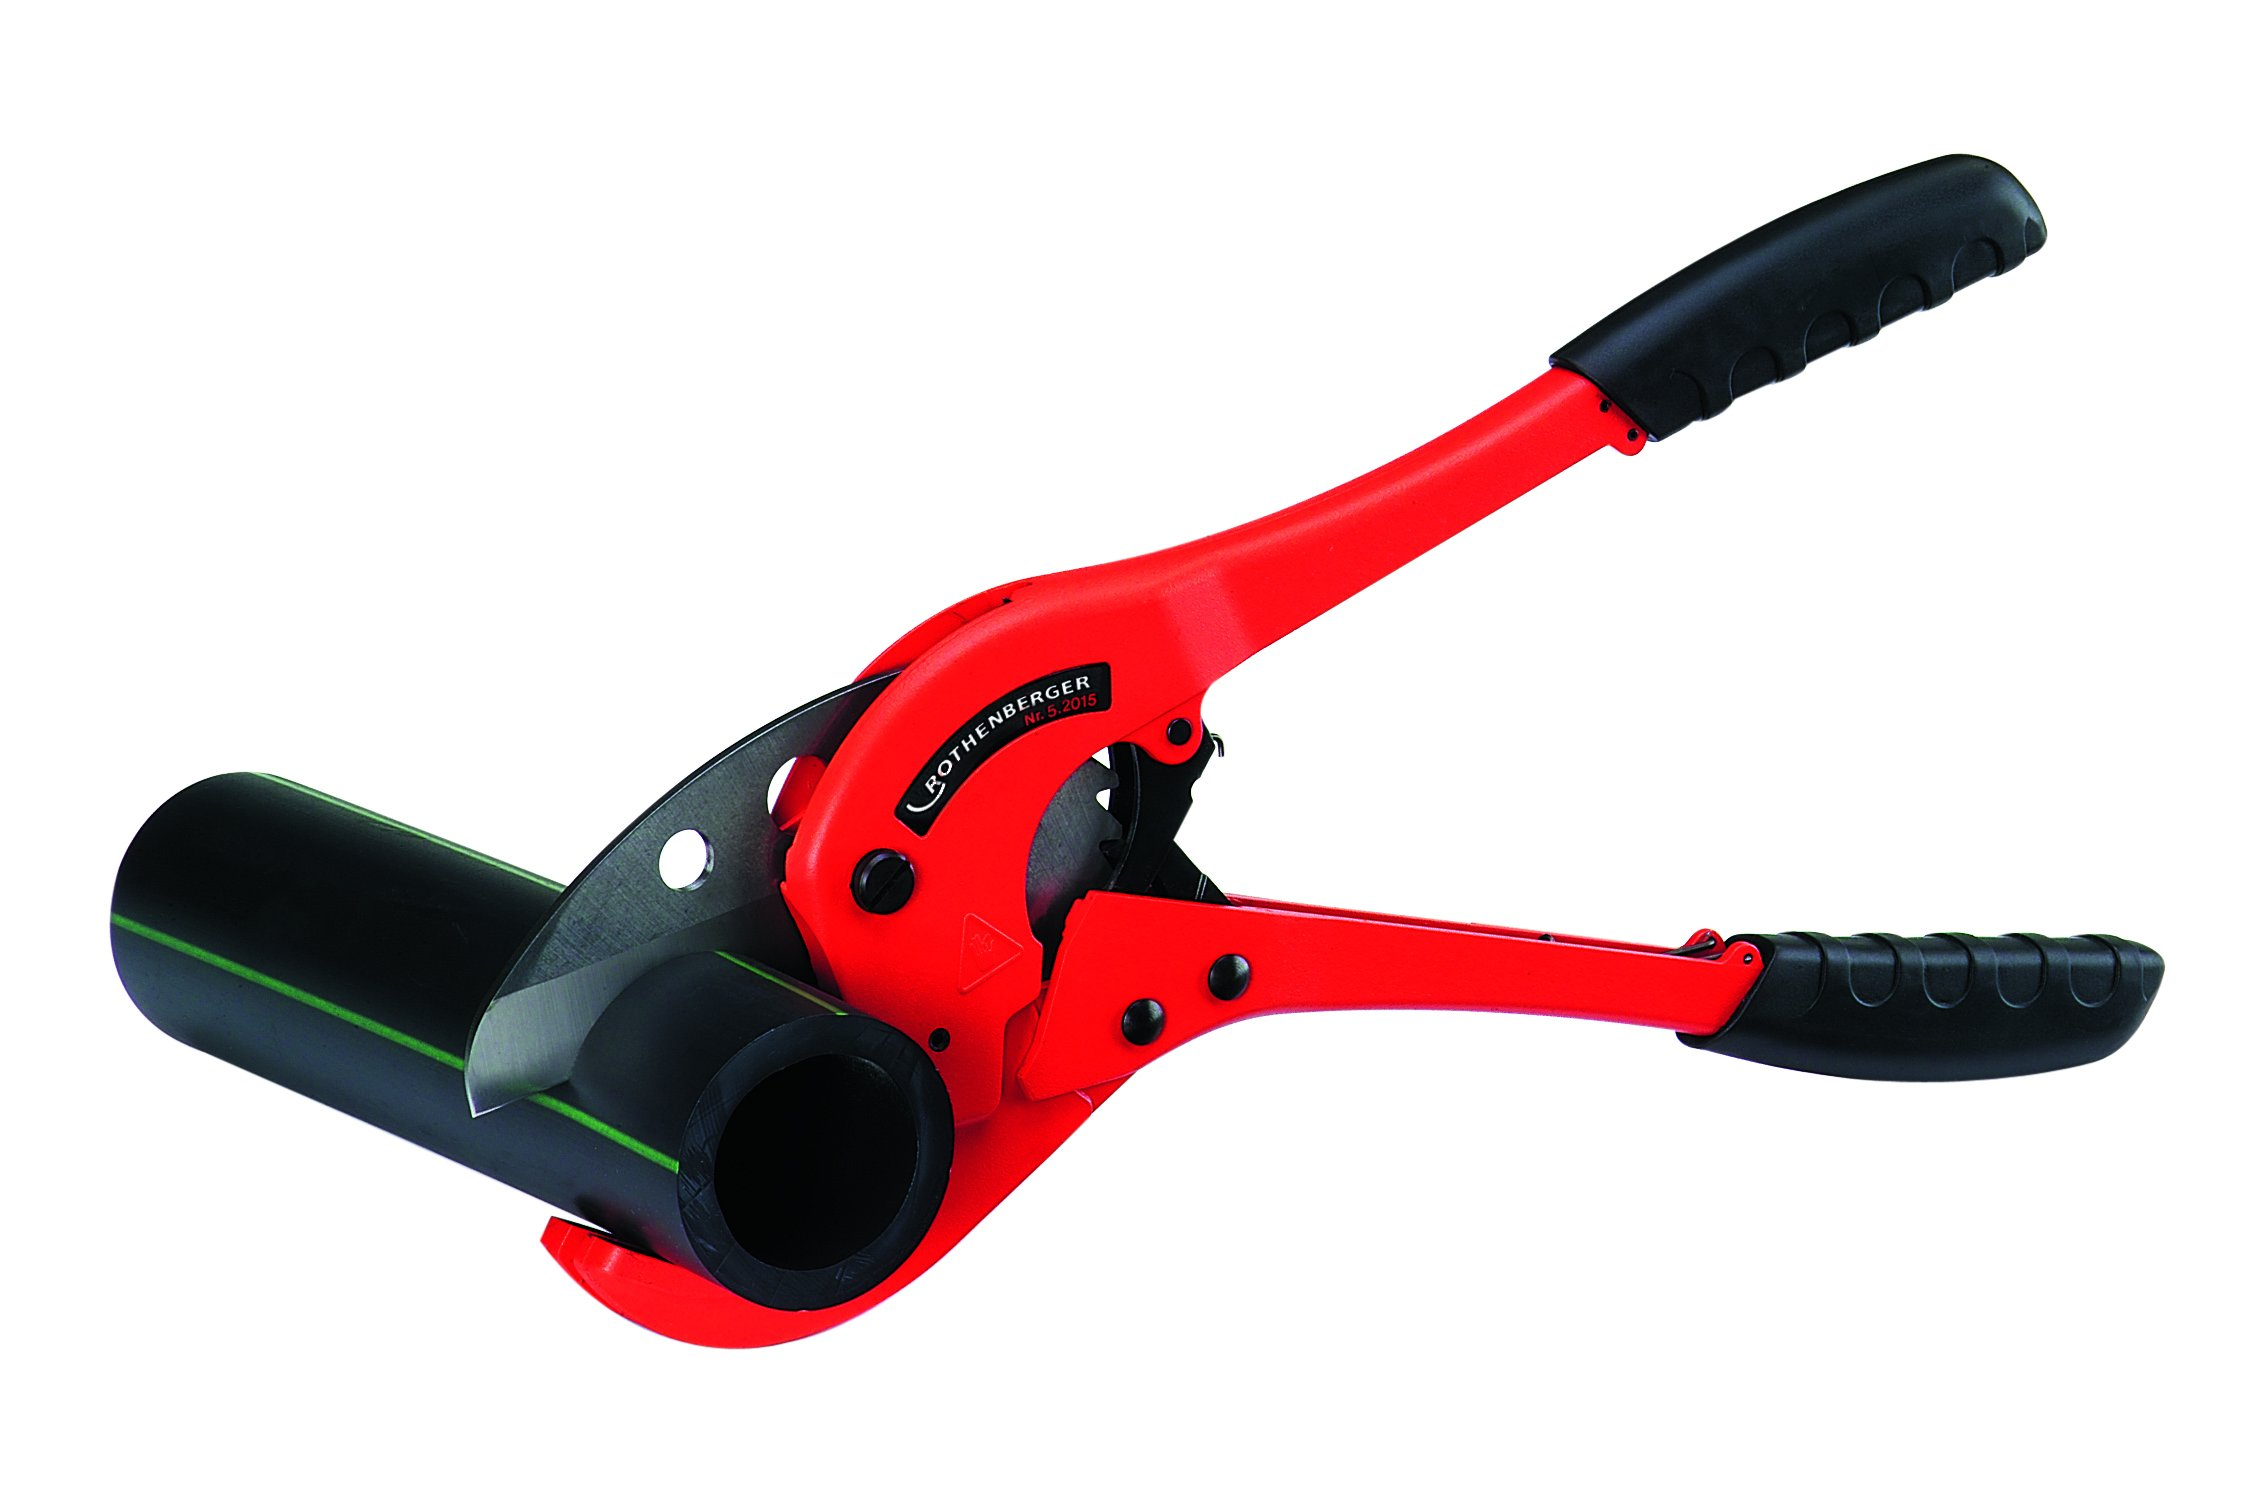 ROTHENBERGER 52015 Rocut 75TC - Professional Pipe Shears: Max. Sch. 40 PVC, 2-1/2'' and Max O.D. 3'' by Rothenberger